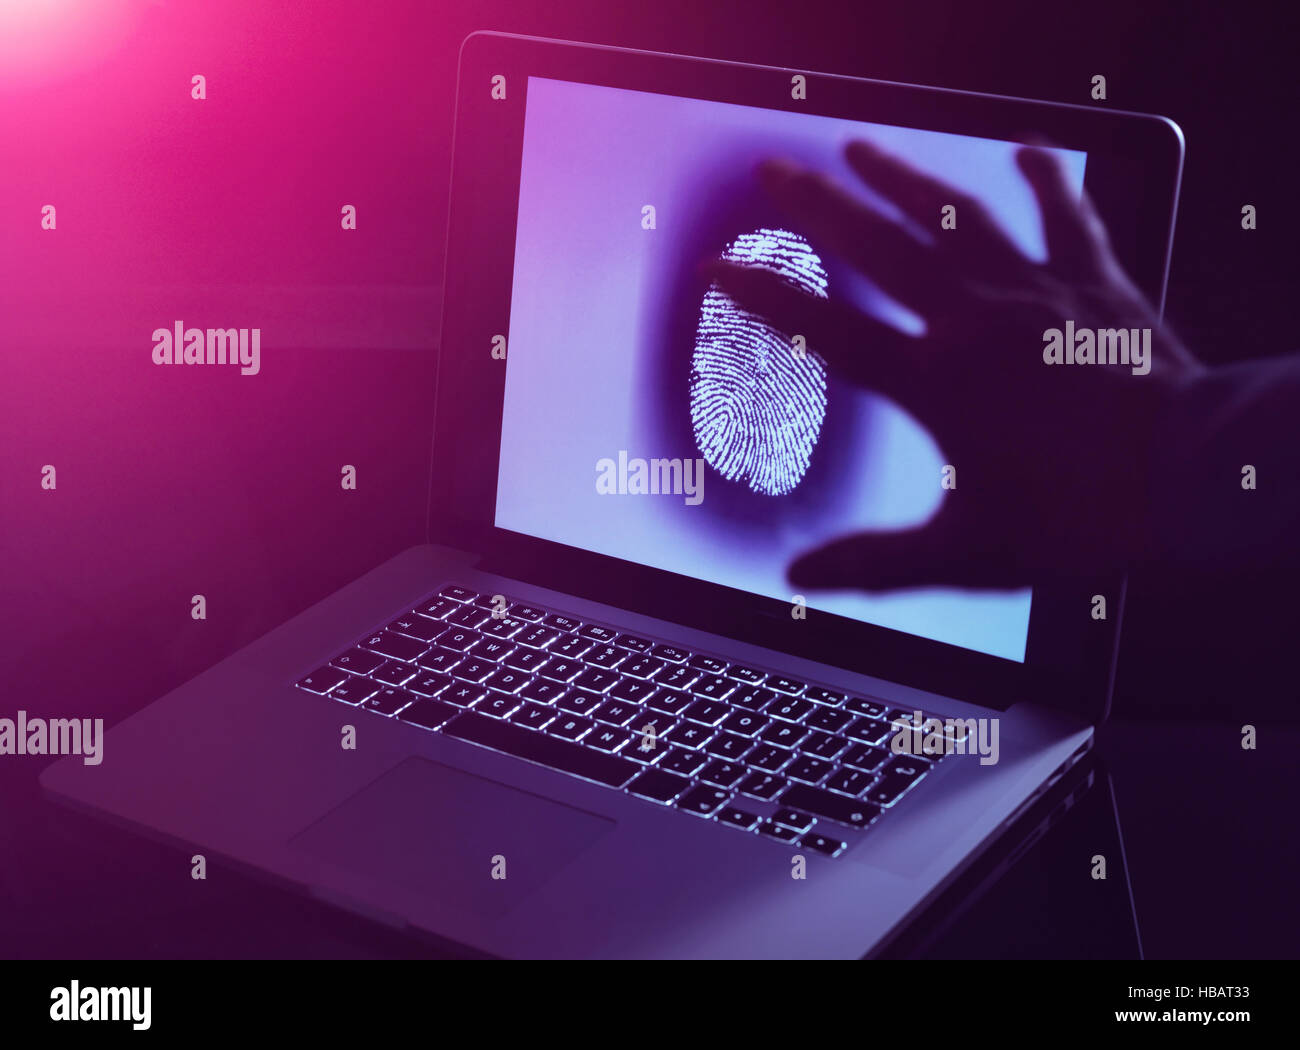 Hand grabbing the personnel identity of somebody online - Stock Image